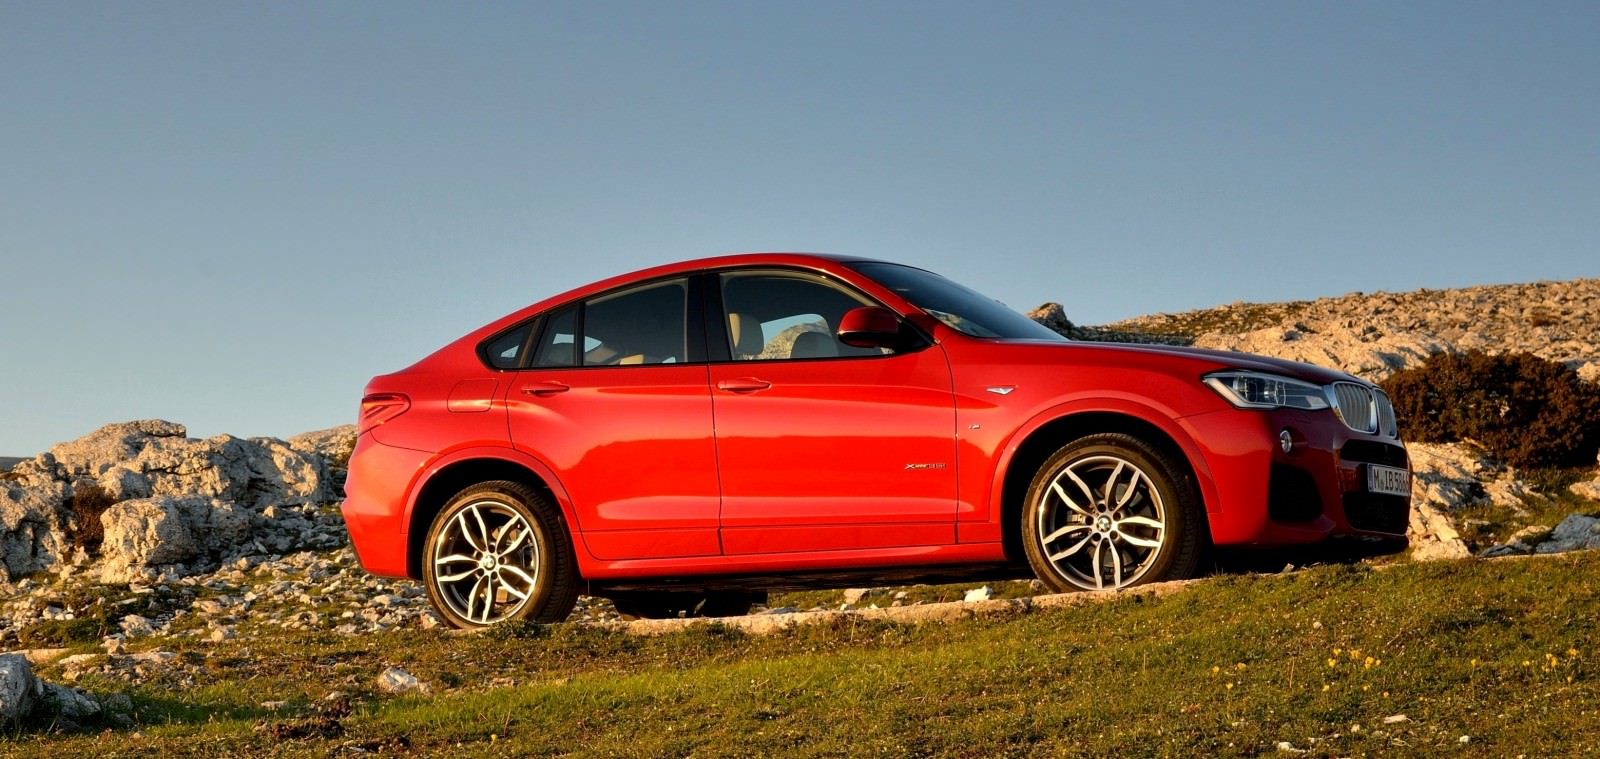 Update2 Debut Photos - 2015 BMW X4 Arriving Now to USA BMW Dealers 4